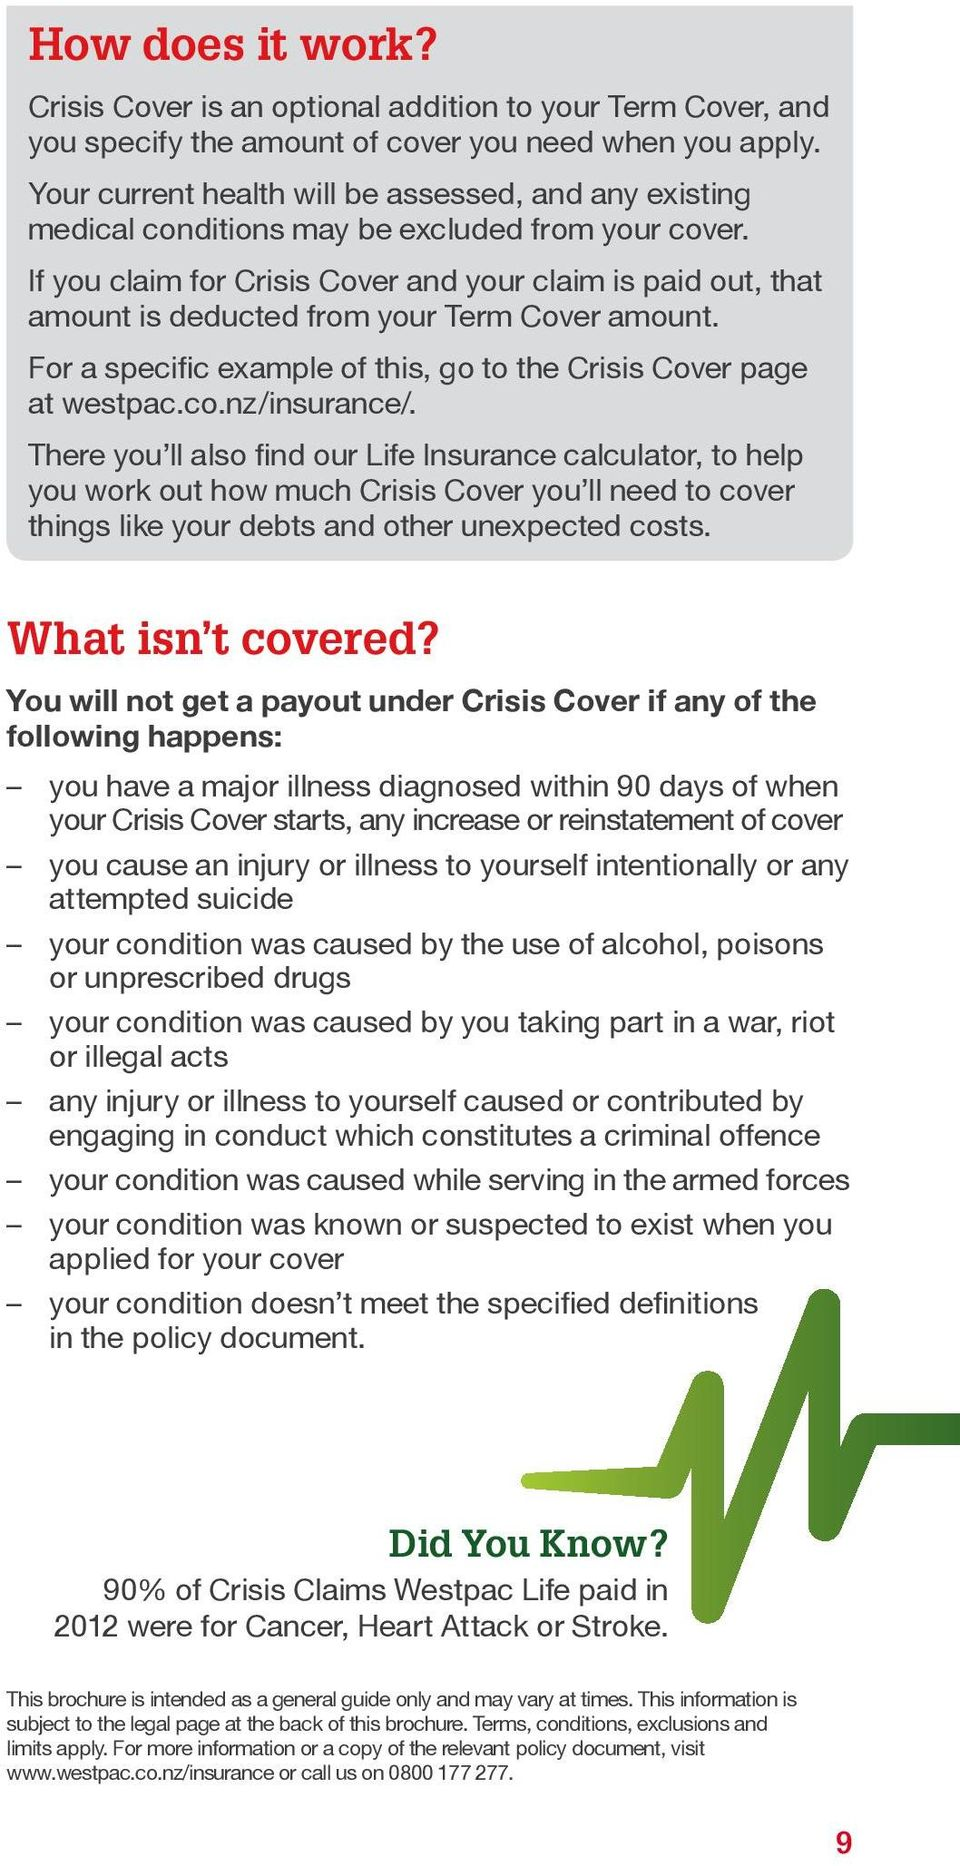 If you claim for Crisis Cover and your claim is paid out, that amount is deducted from your Term Cover amount. For a specific example of this, go to the Crisis Cover page at westpac.co.nz/insurance/.